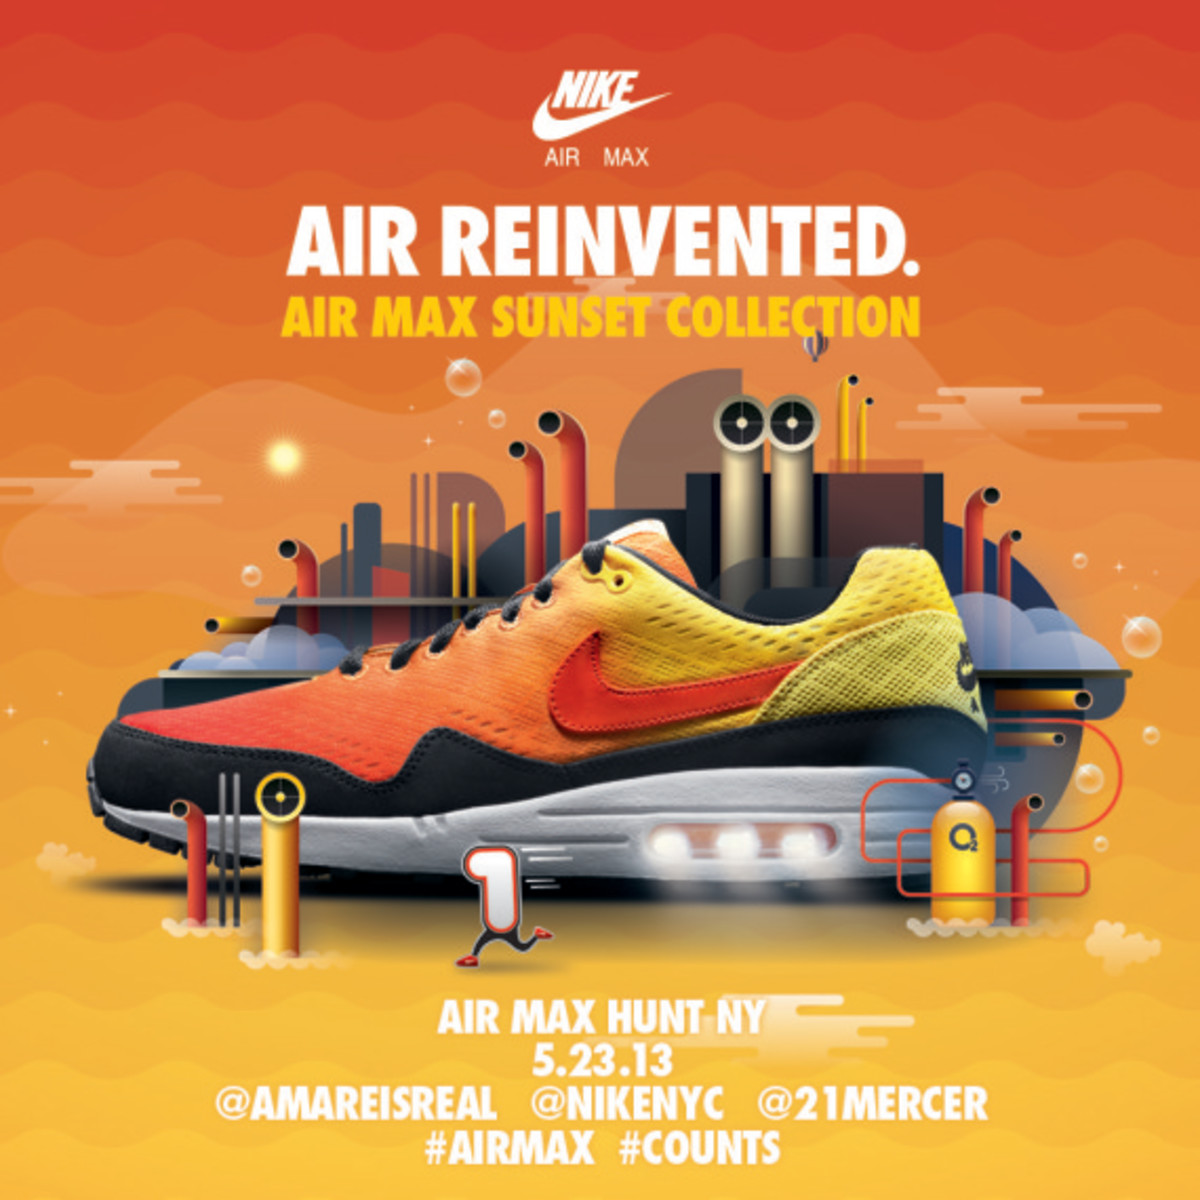 nike-air-max-hunt-in-sf-and-nyc-06